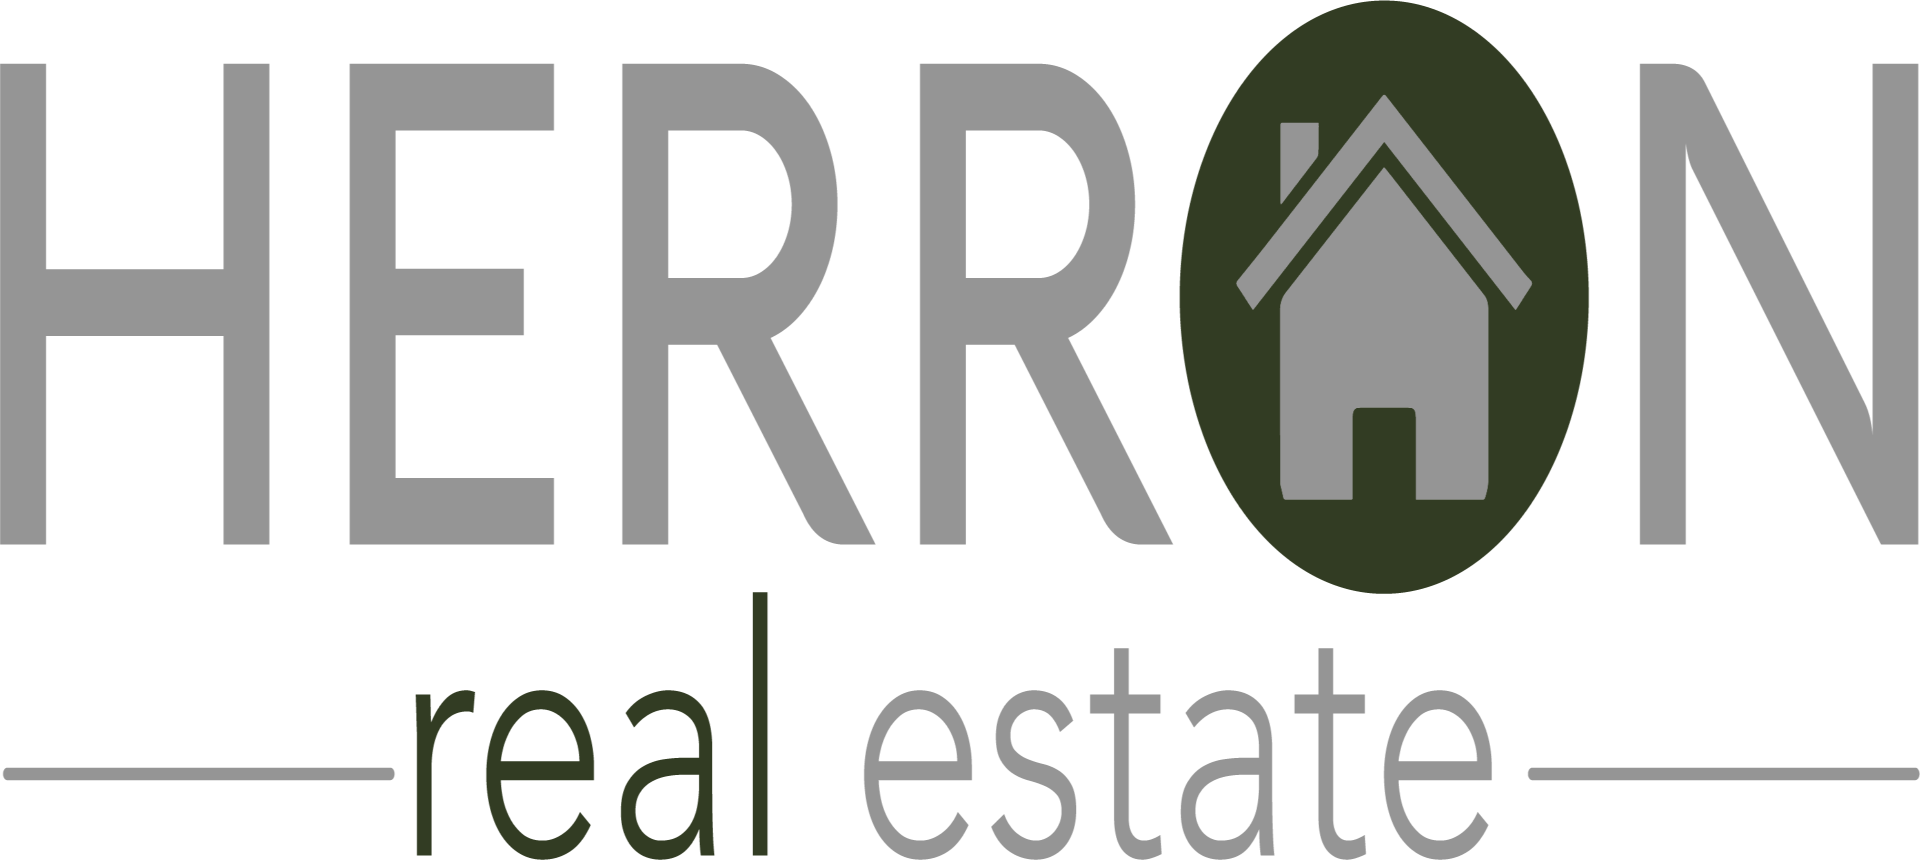 Herron Real Estate